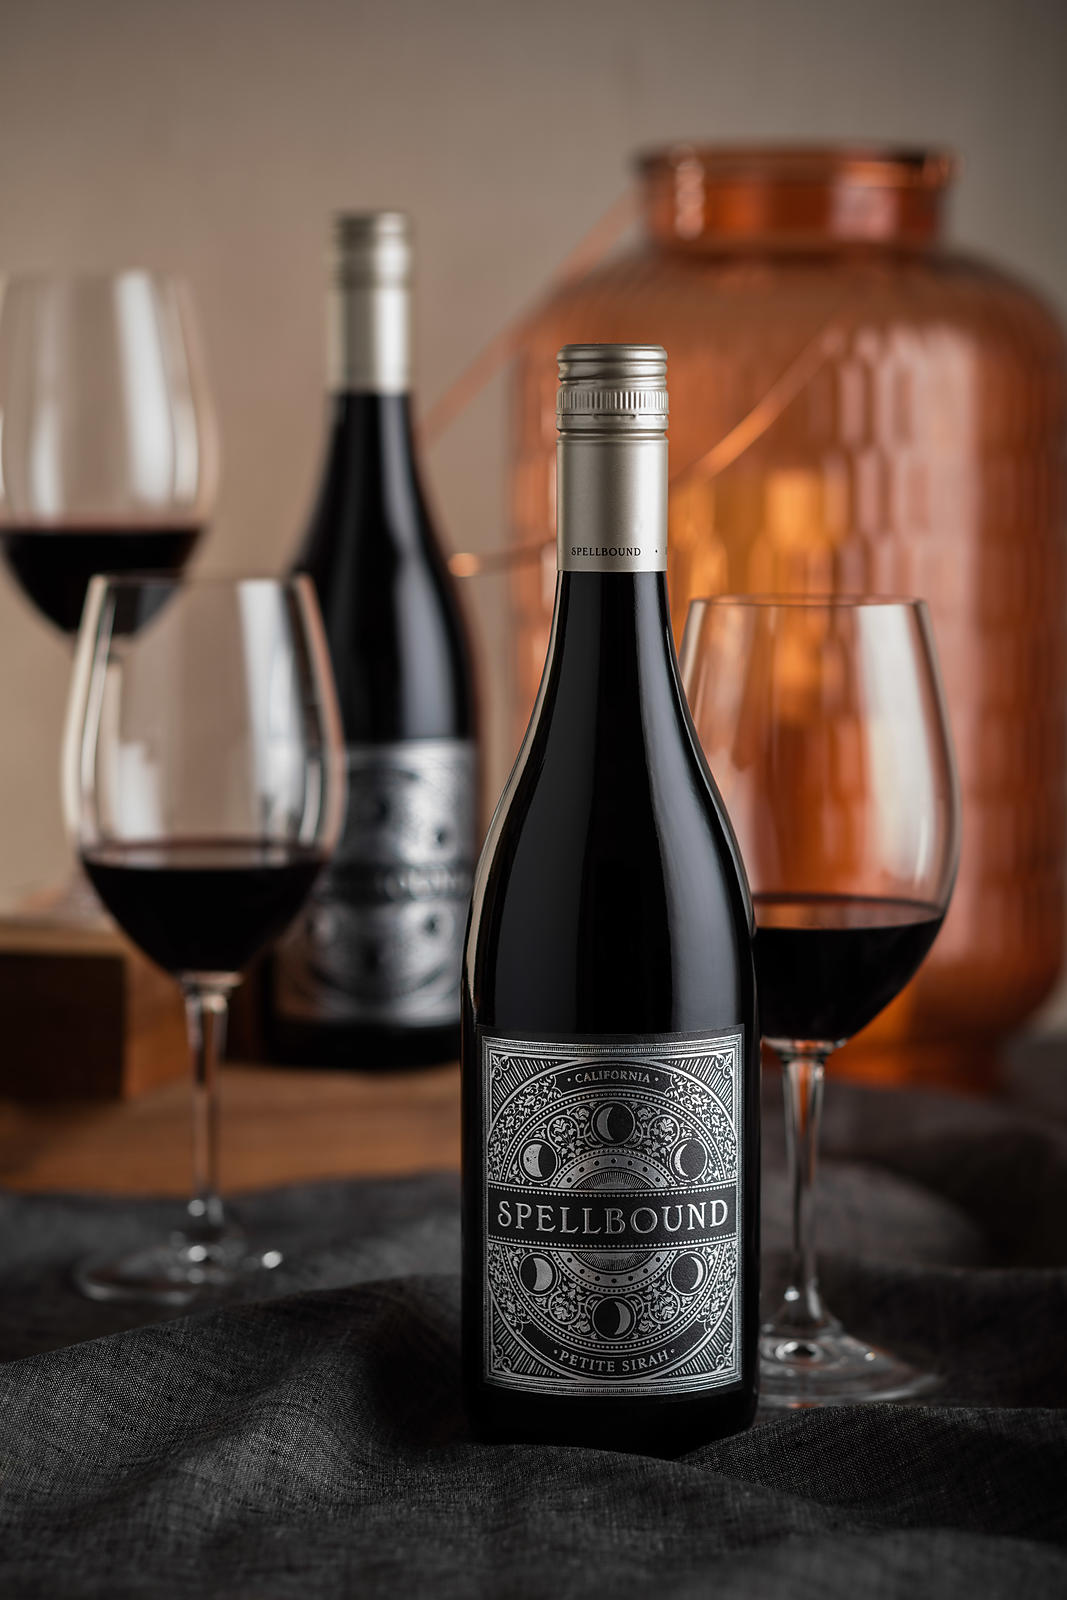 Commercial advertising and marketing photography for national brand Spellbound Wines by Jason Tinacci